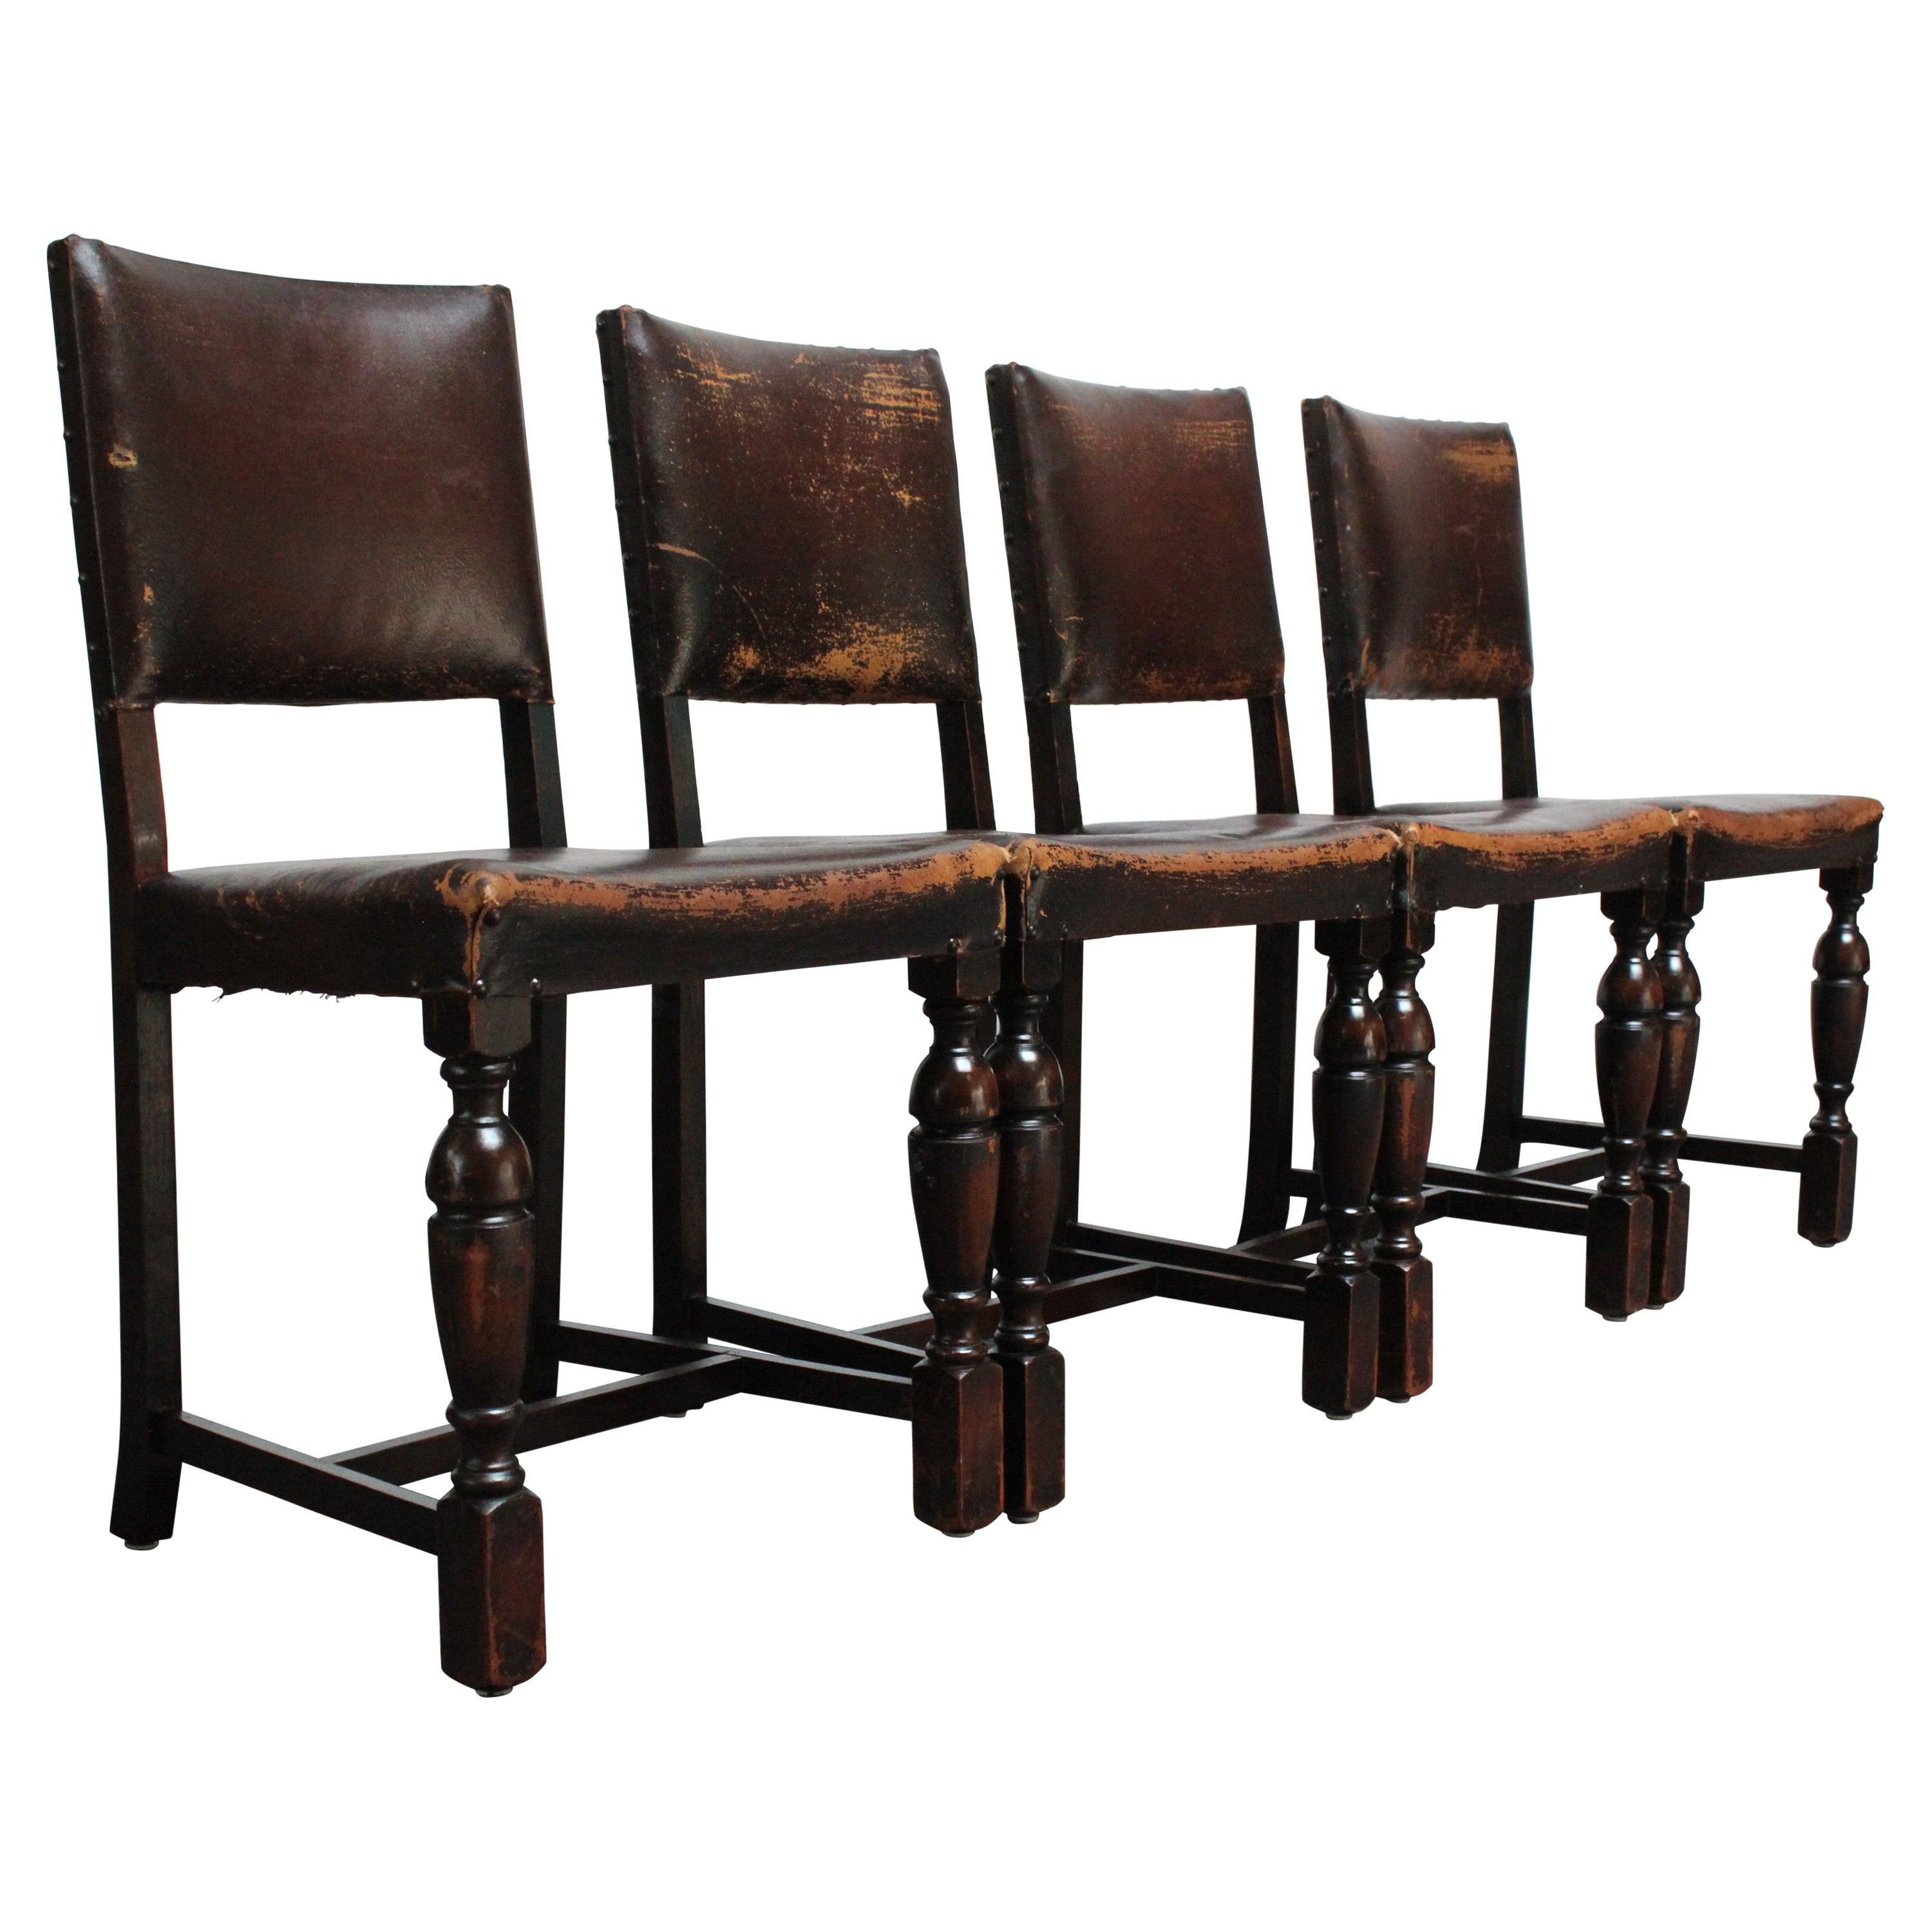 Set of Four Vintage Spanish Revival Style Dining Chairs